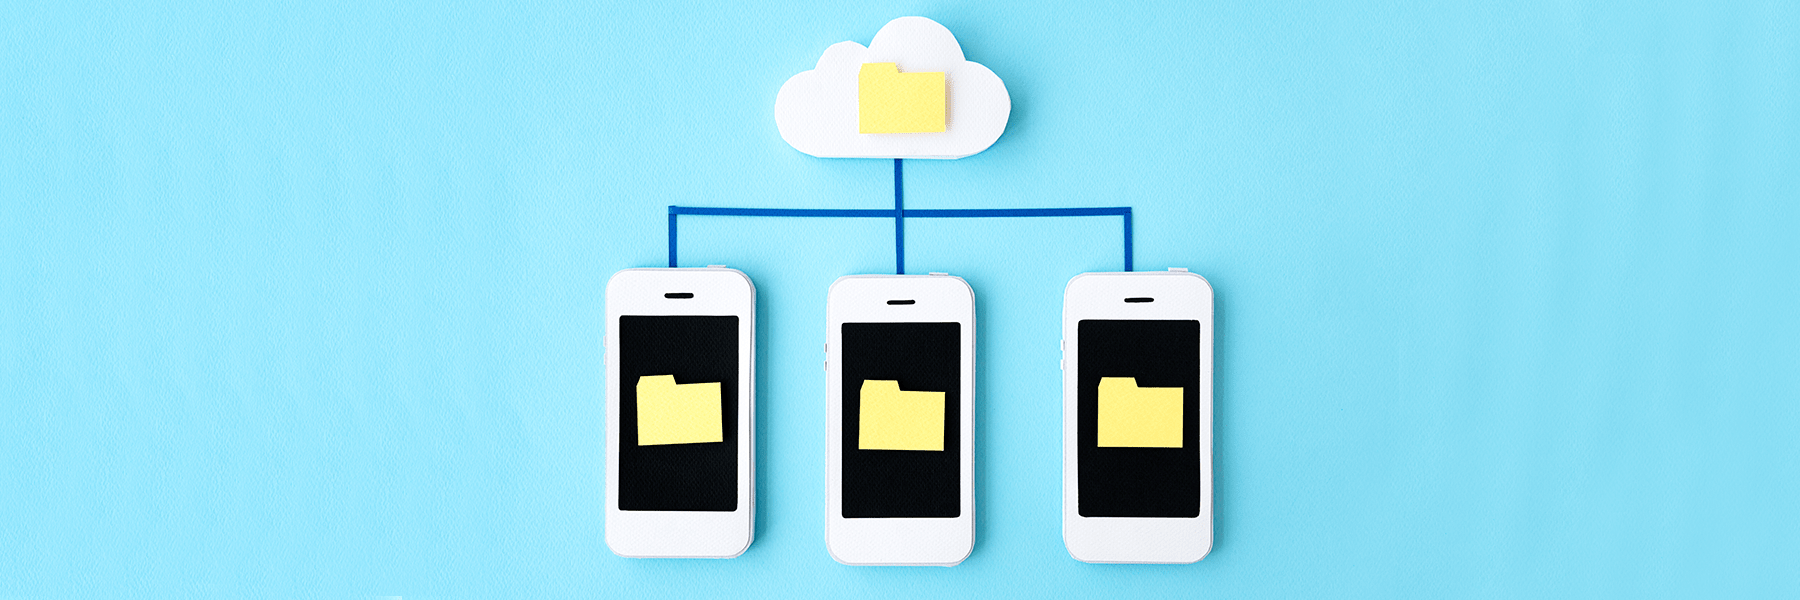 cloud-powered mobile app development with xamarin and azure image